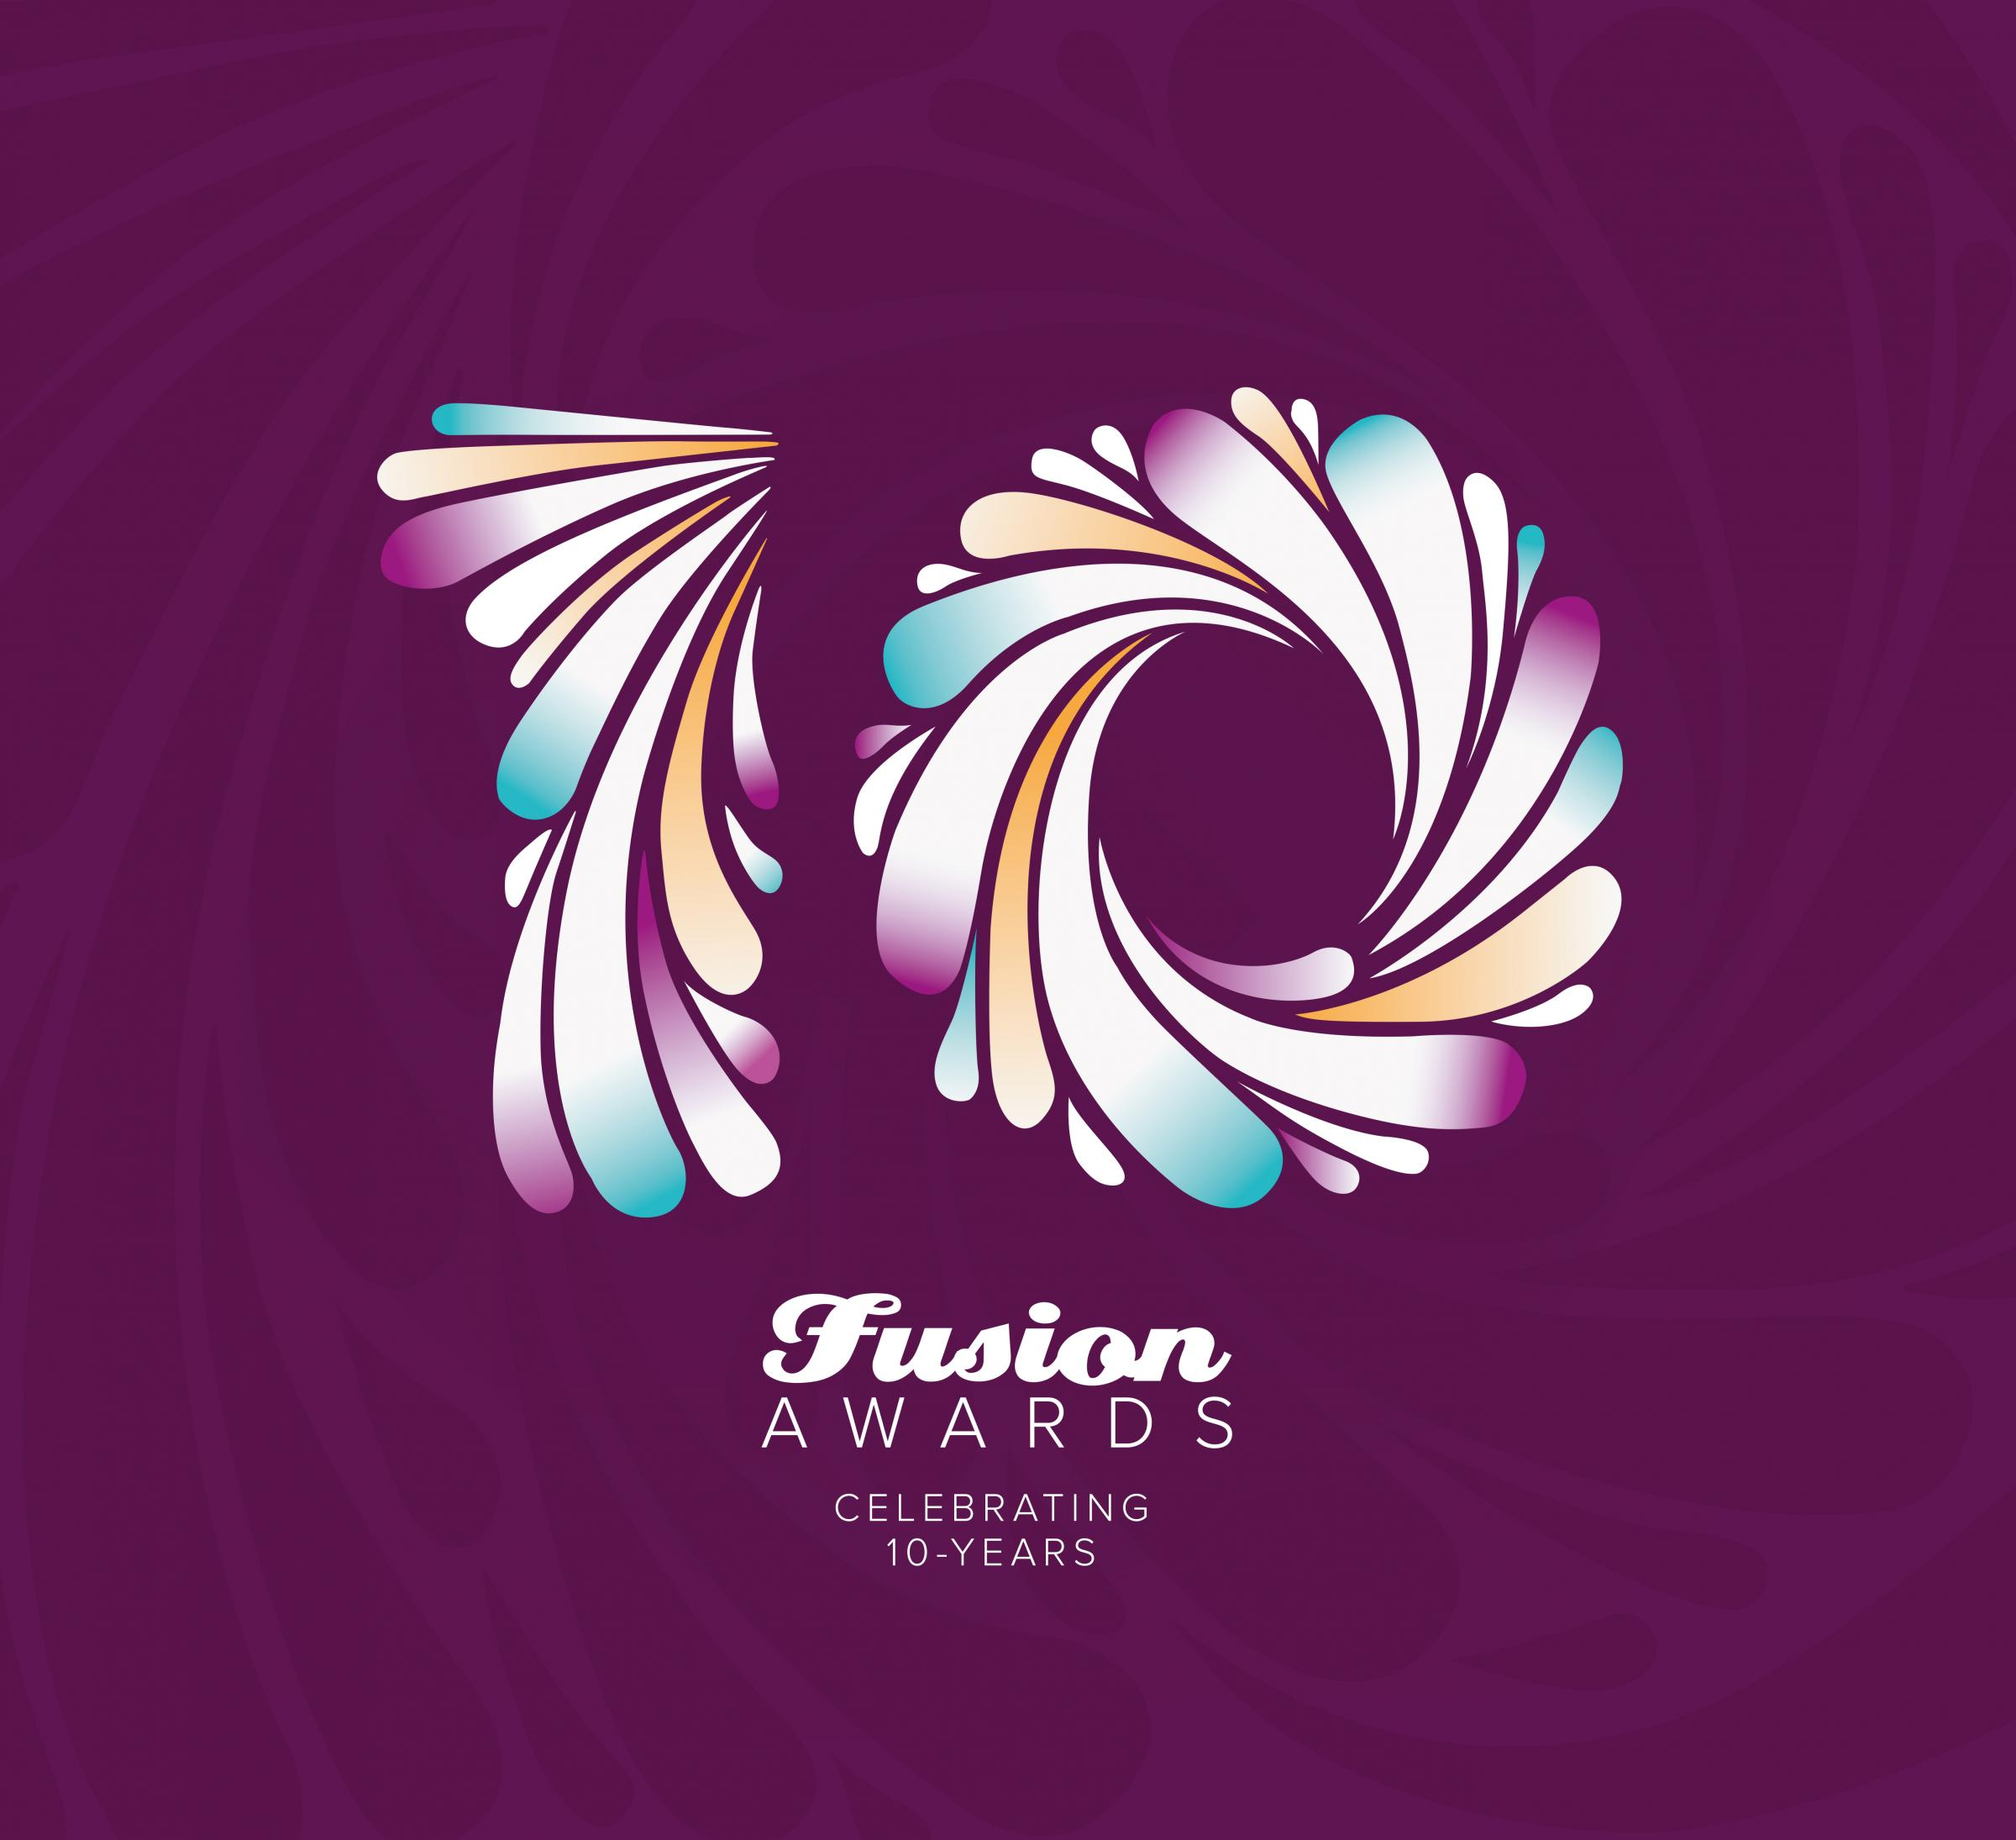 Details for 10th Fusion Awards ceremony announced